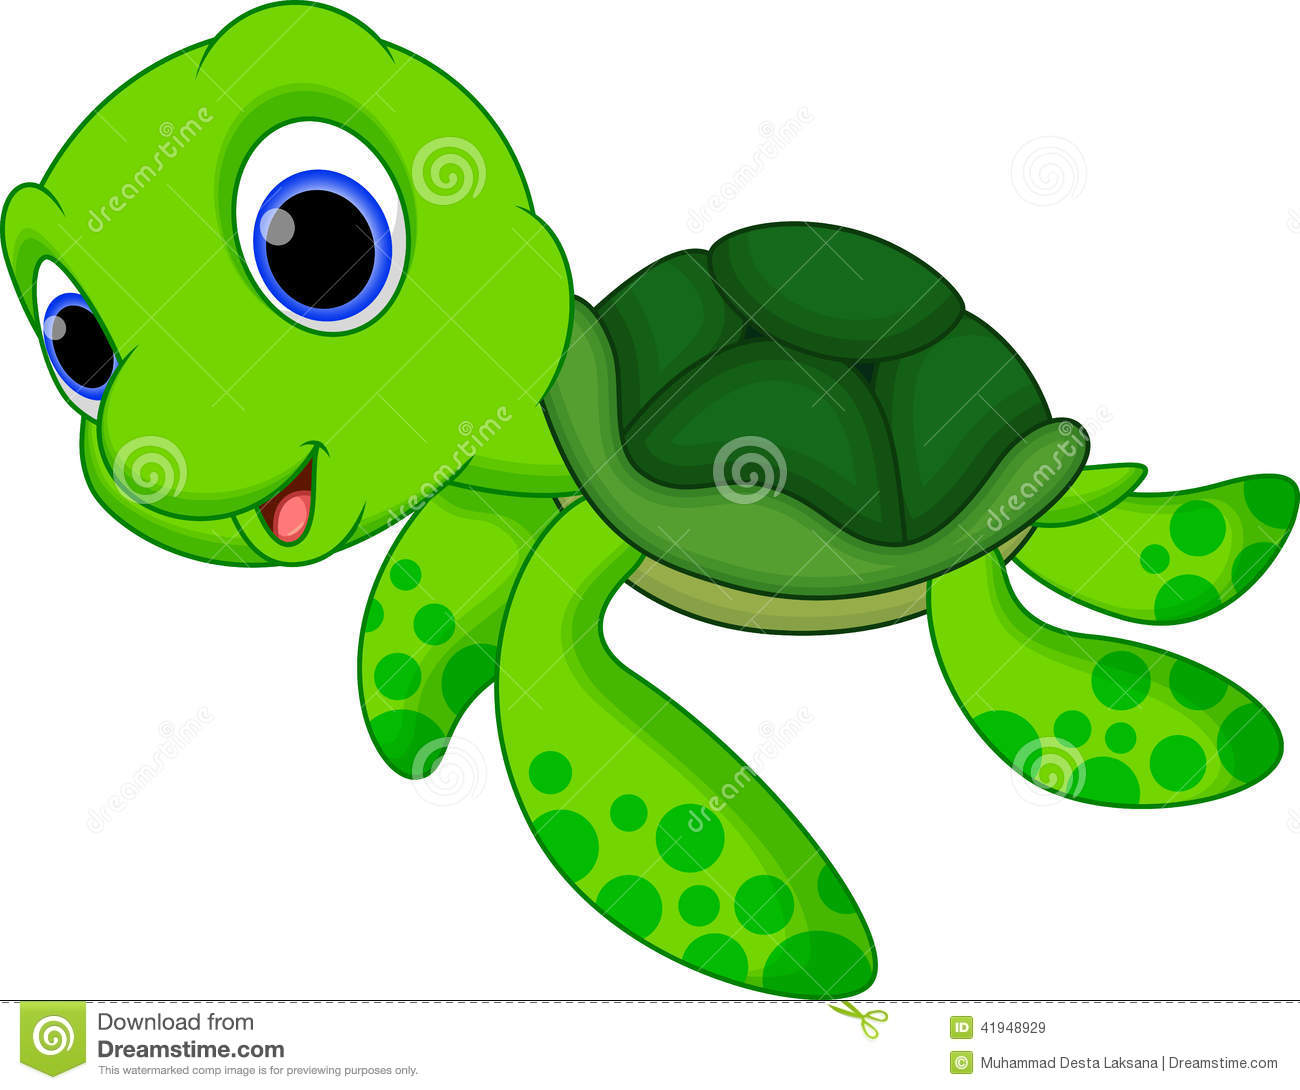 cartoon sea turtle - Google Search - Sea Turtle Cartoon PNG